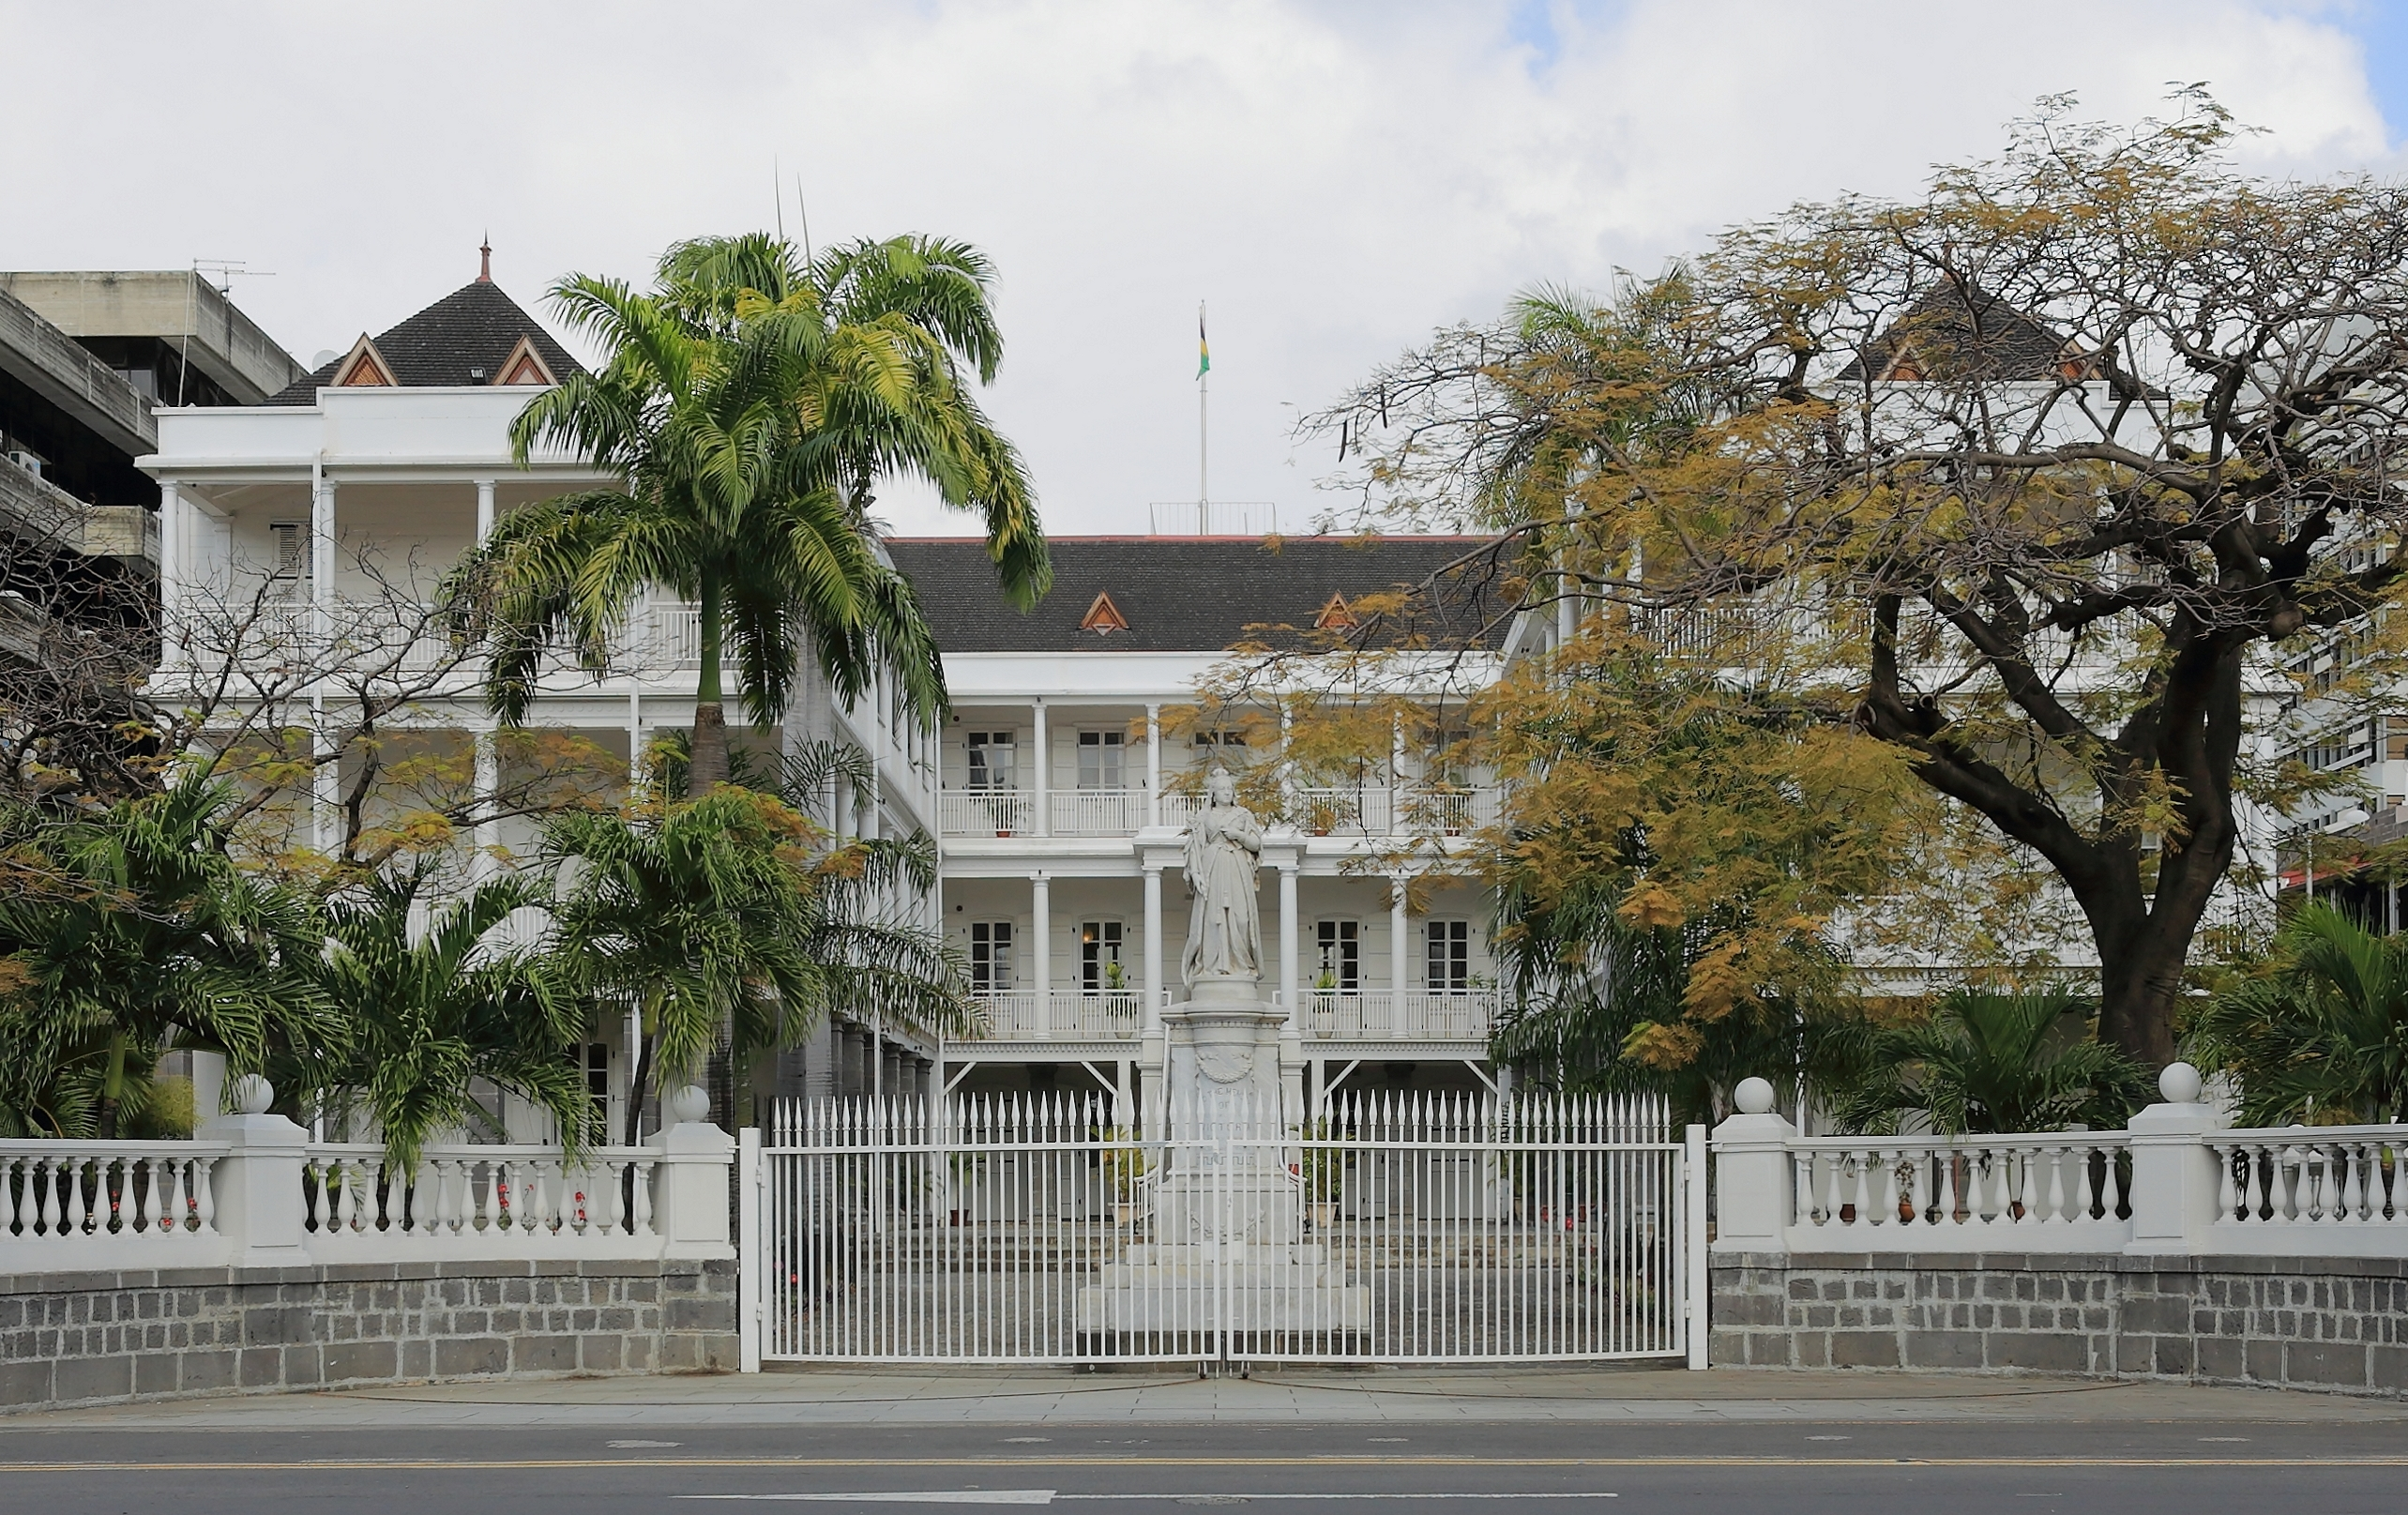 File:Government House Port Louis.JPG - Wikimedia Commons